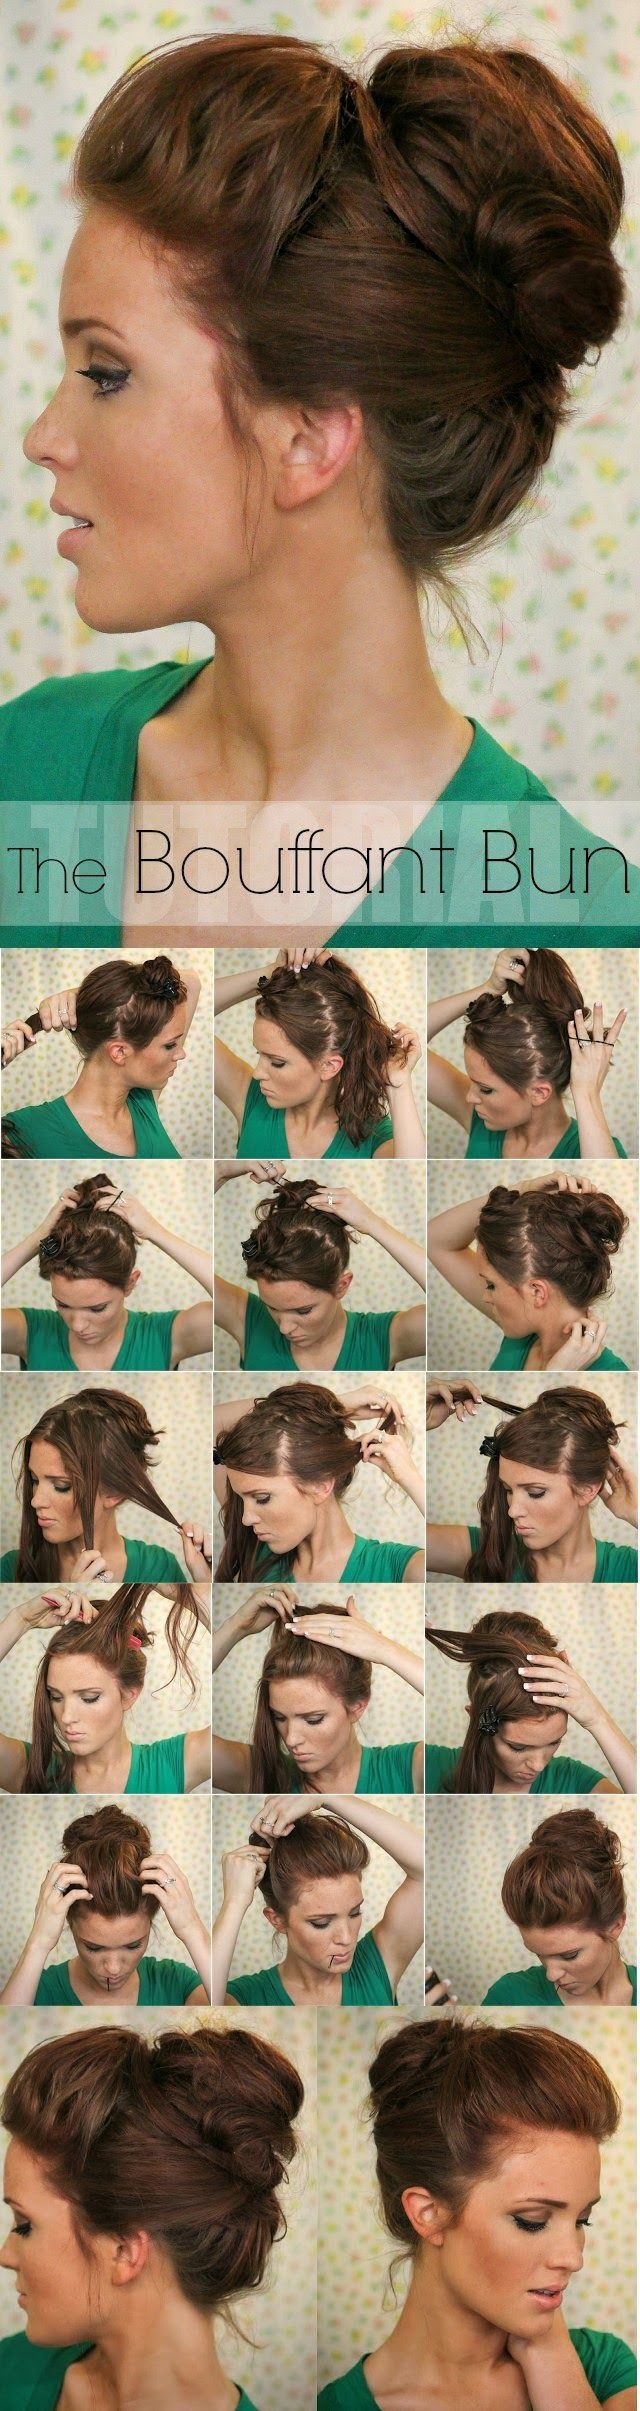 Super Cute But I Tried It And Couldnt Get It To Look Right On Me - Classic hairstyle tutorials